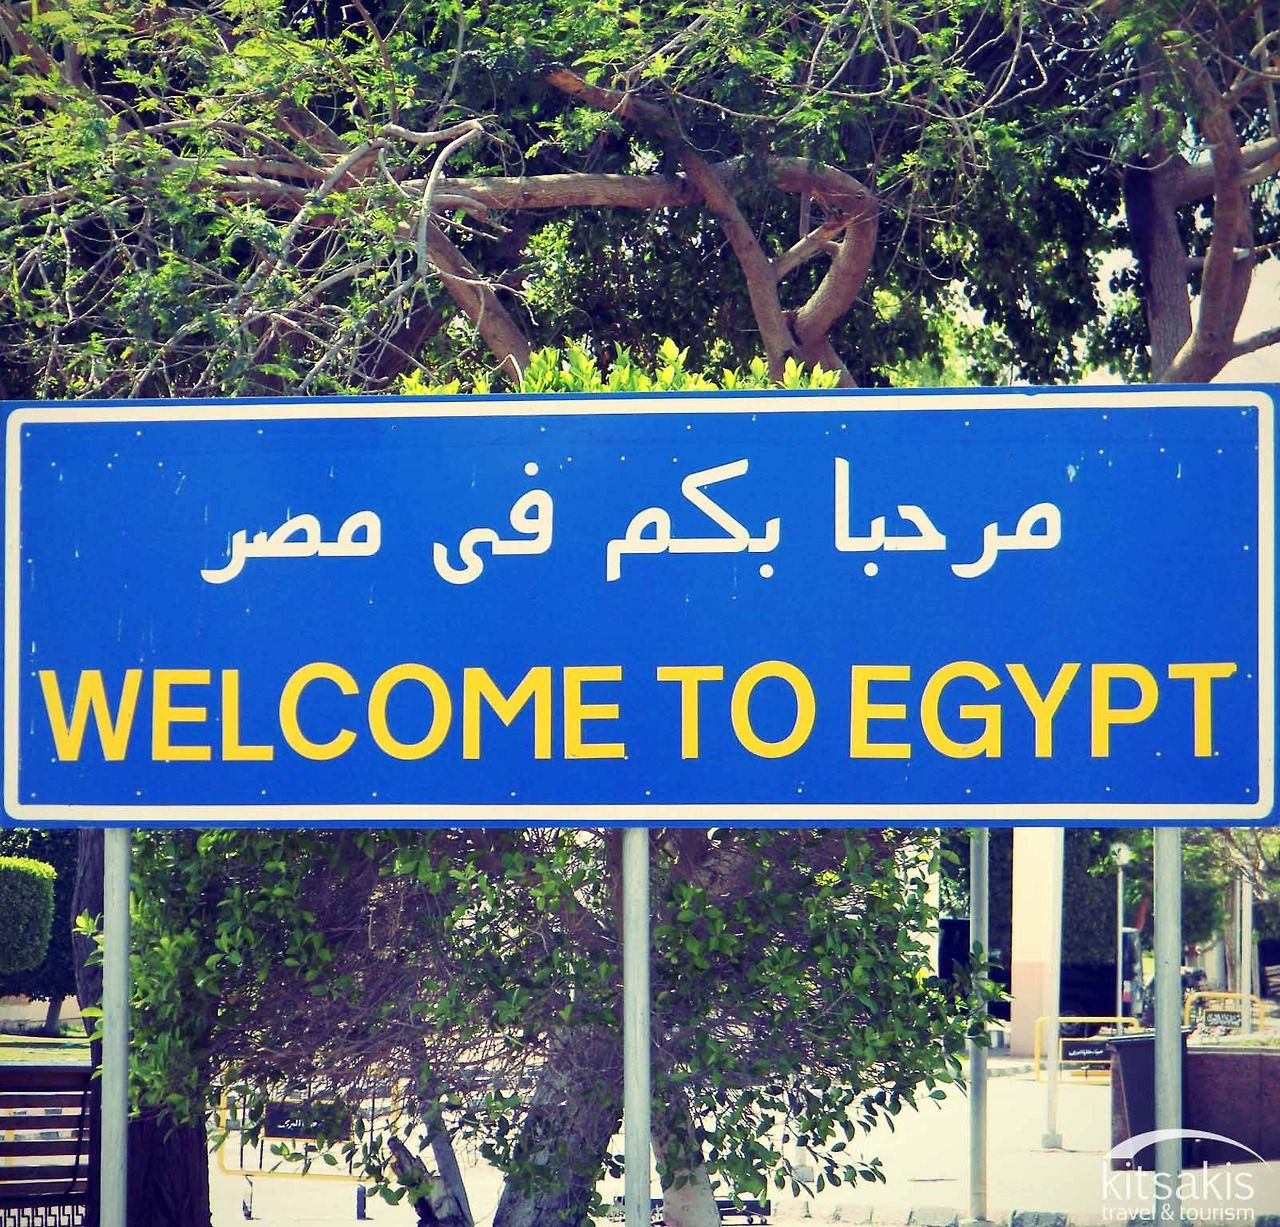 """""""Welcome to Egypt"""" sign at the Taba border crossing, a land crossing between #Egypt and Israel #kitsakis"""